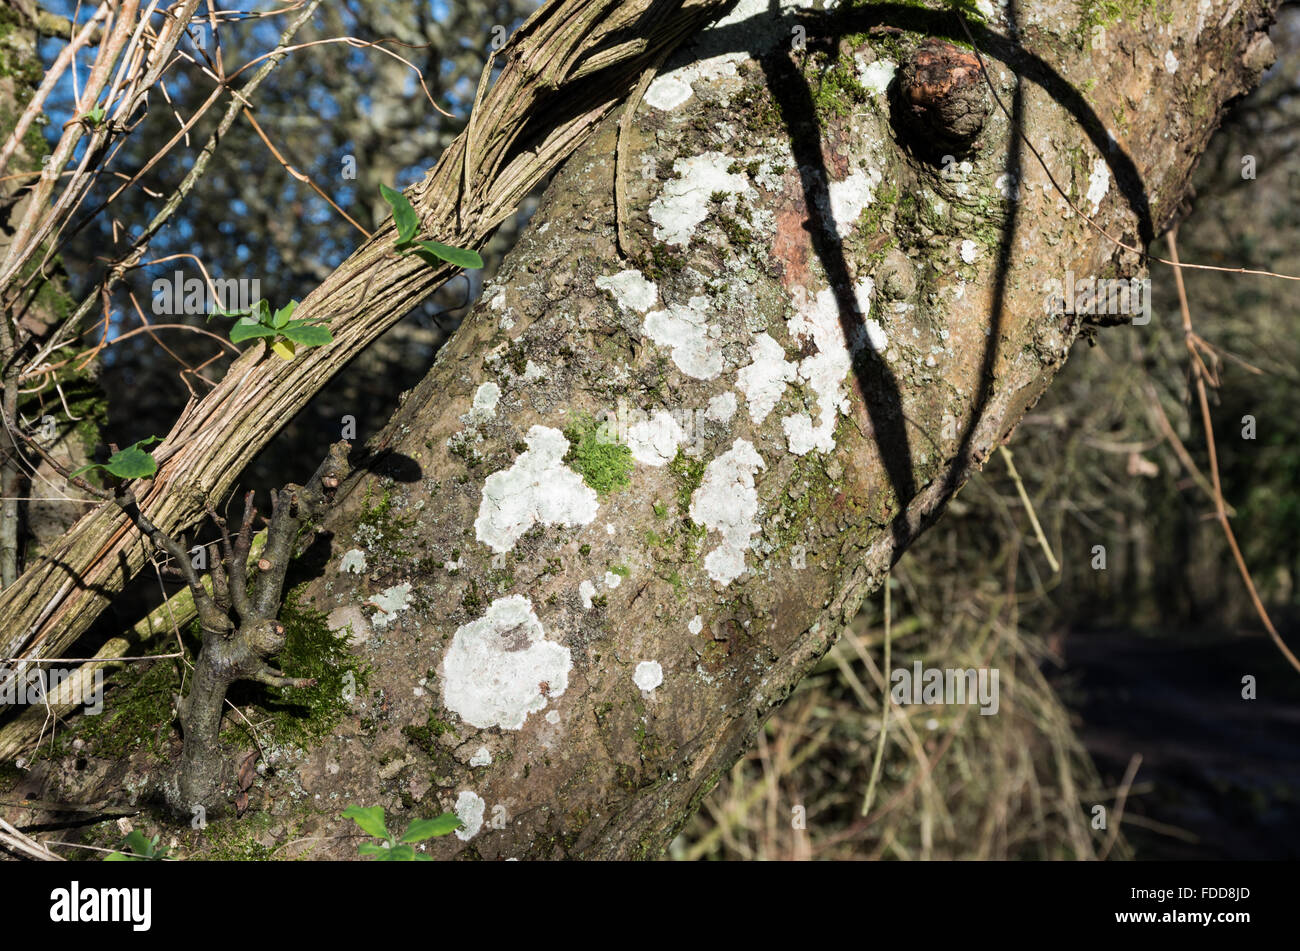 Close up of a tree trunk on a rural track covered in moss, lichen and algae. - Stock Image